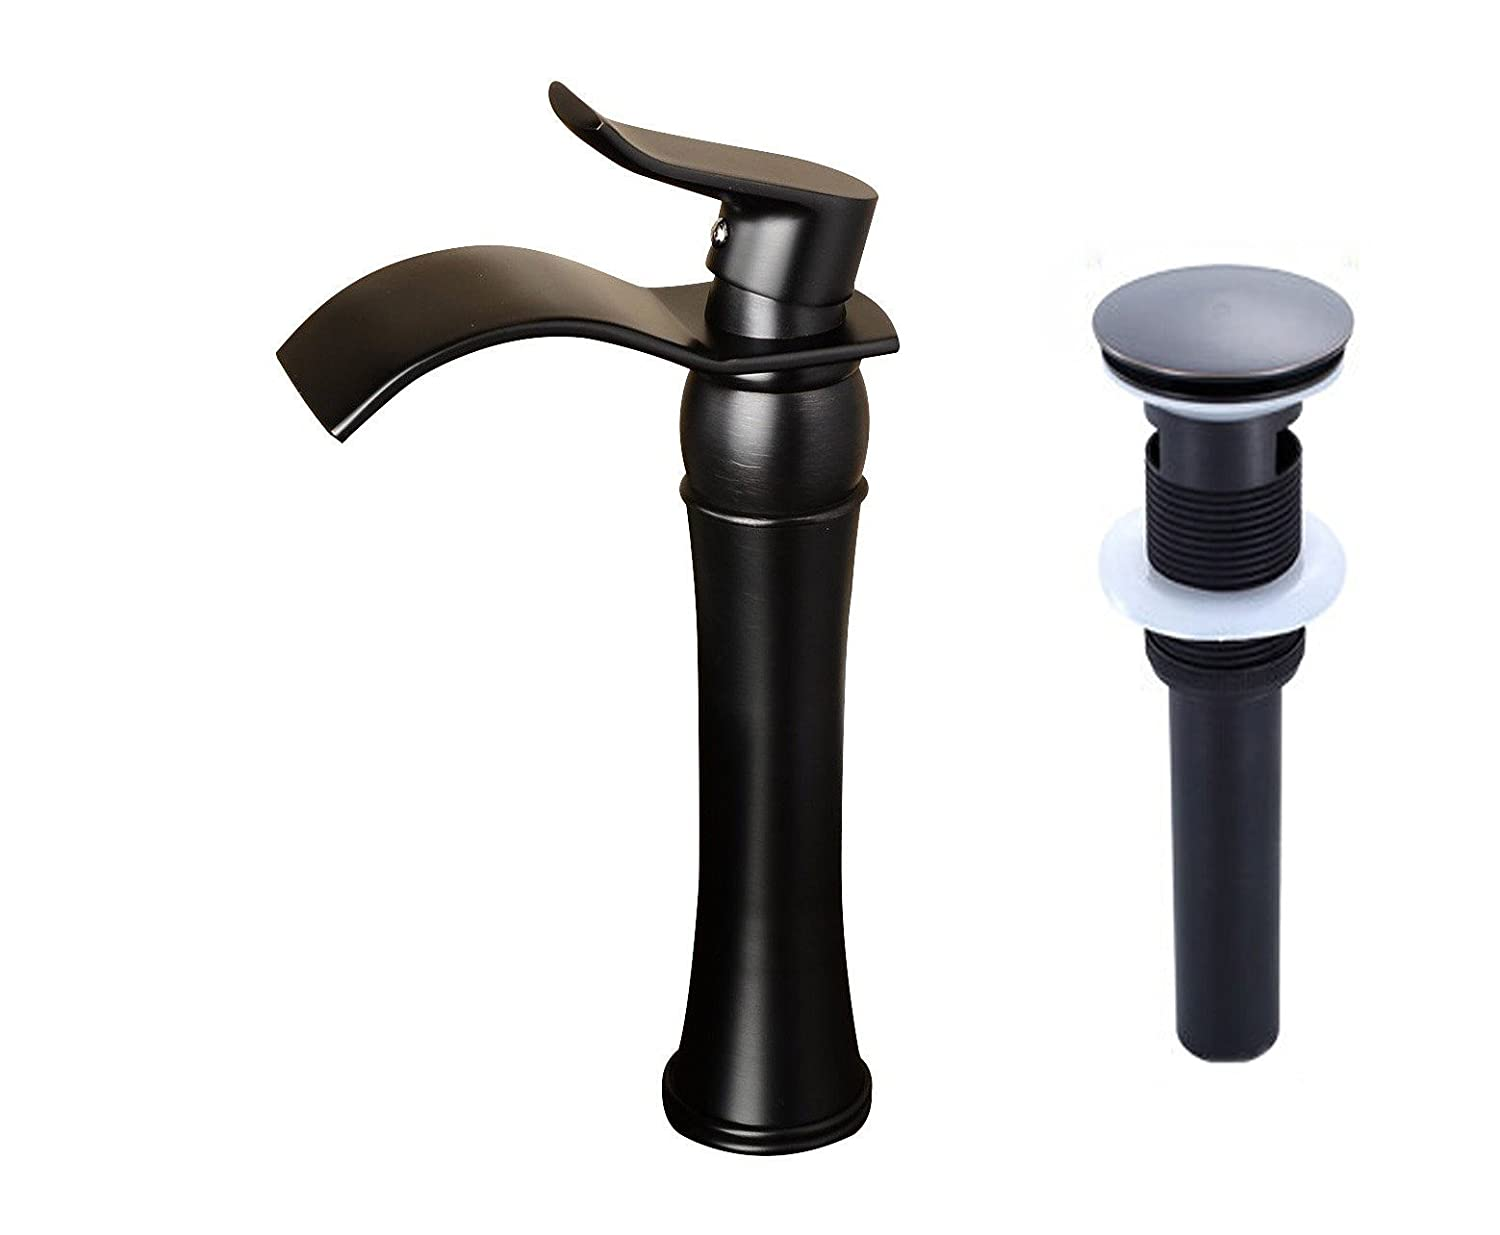 rubbed one bathroom installation hole sink style bronze modern waterfall in handle faucet single oil faucets